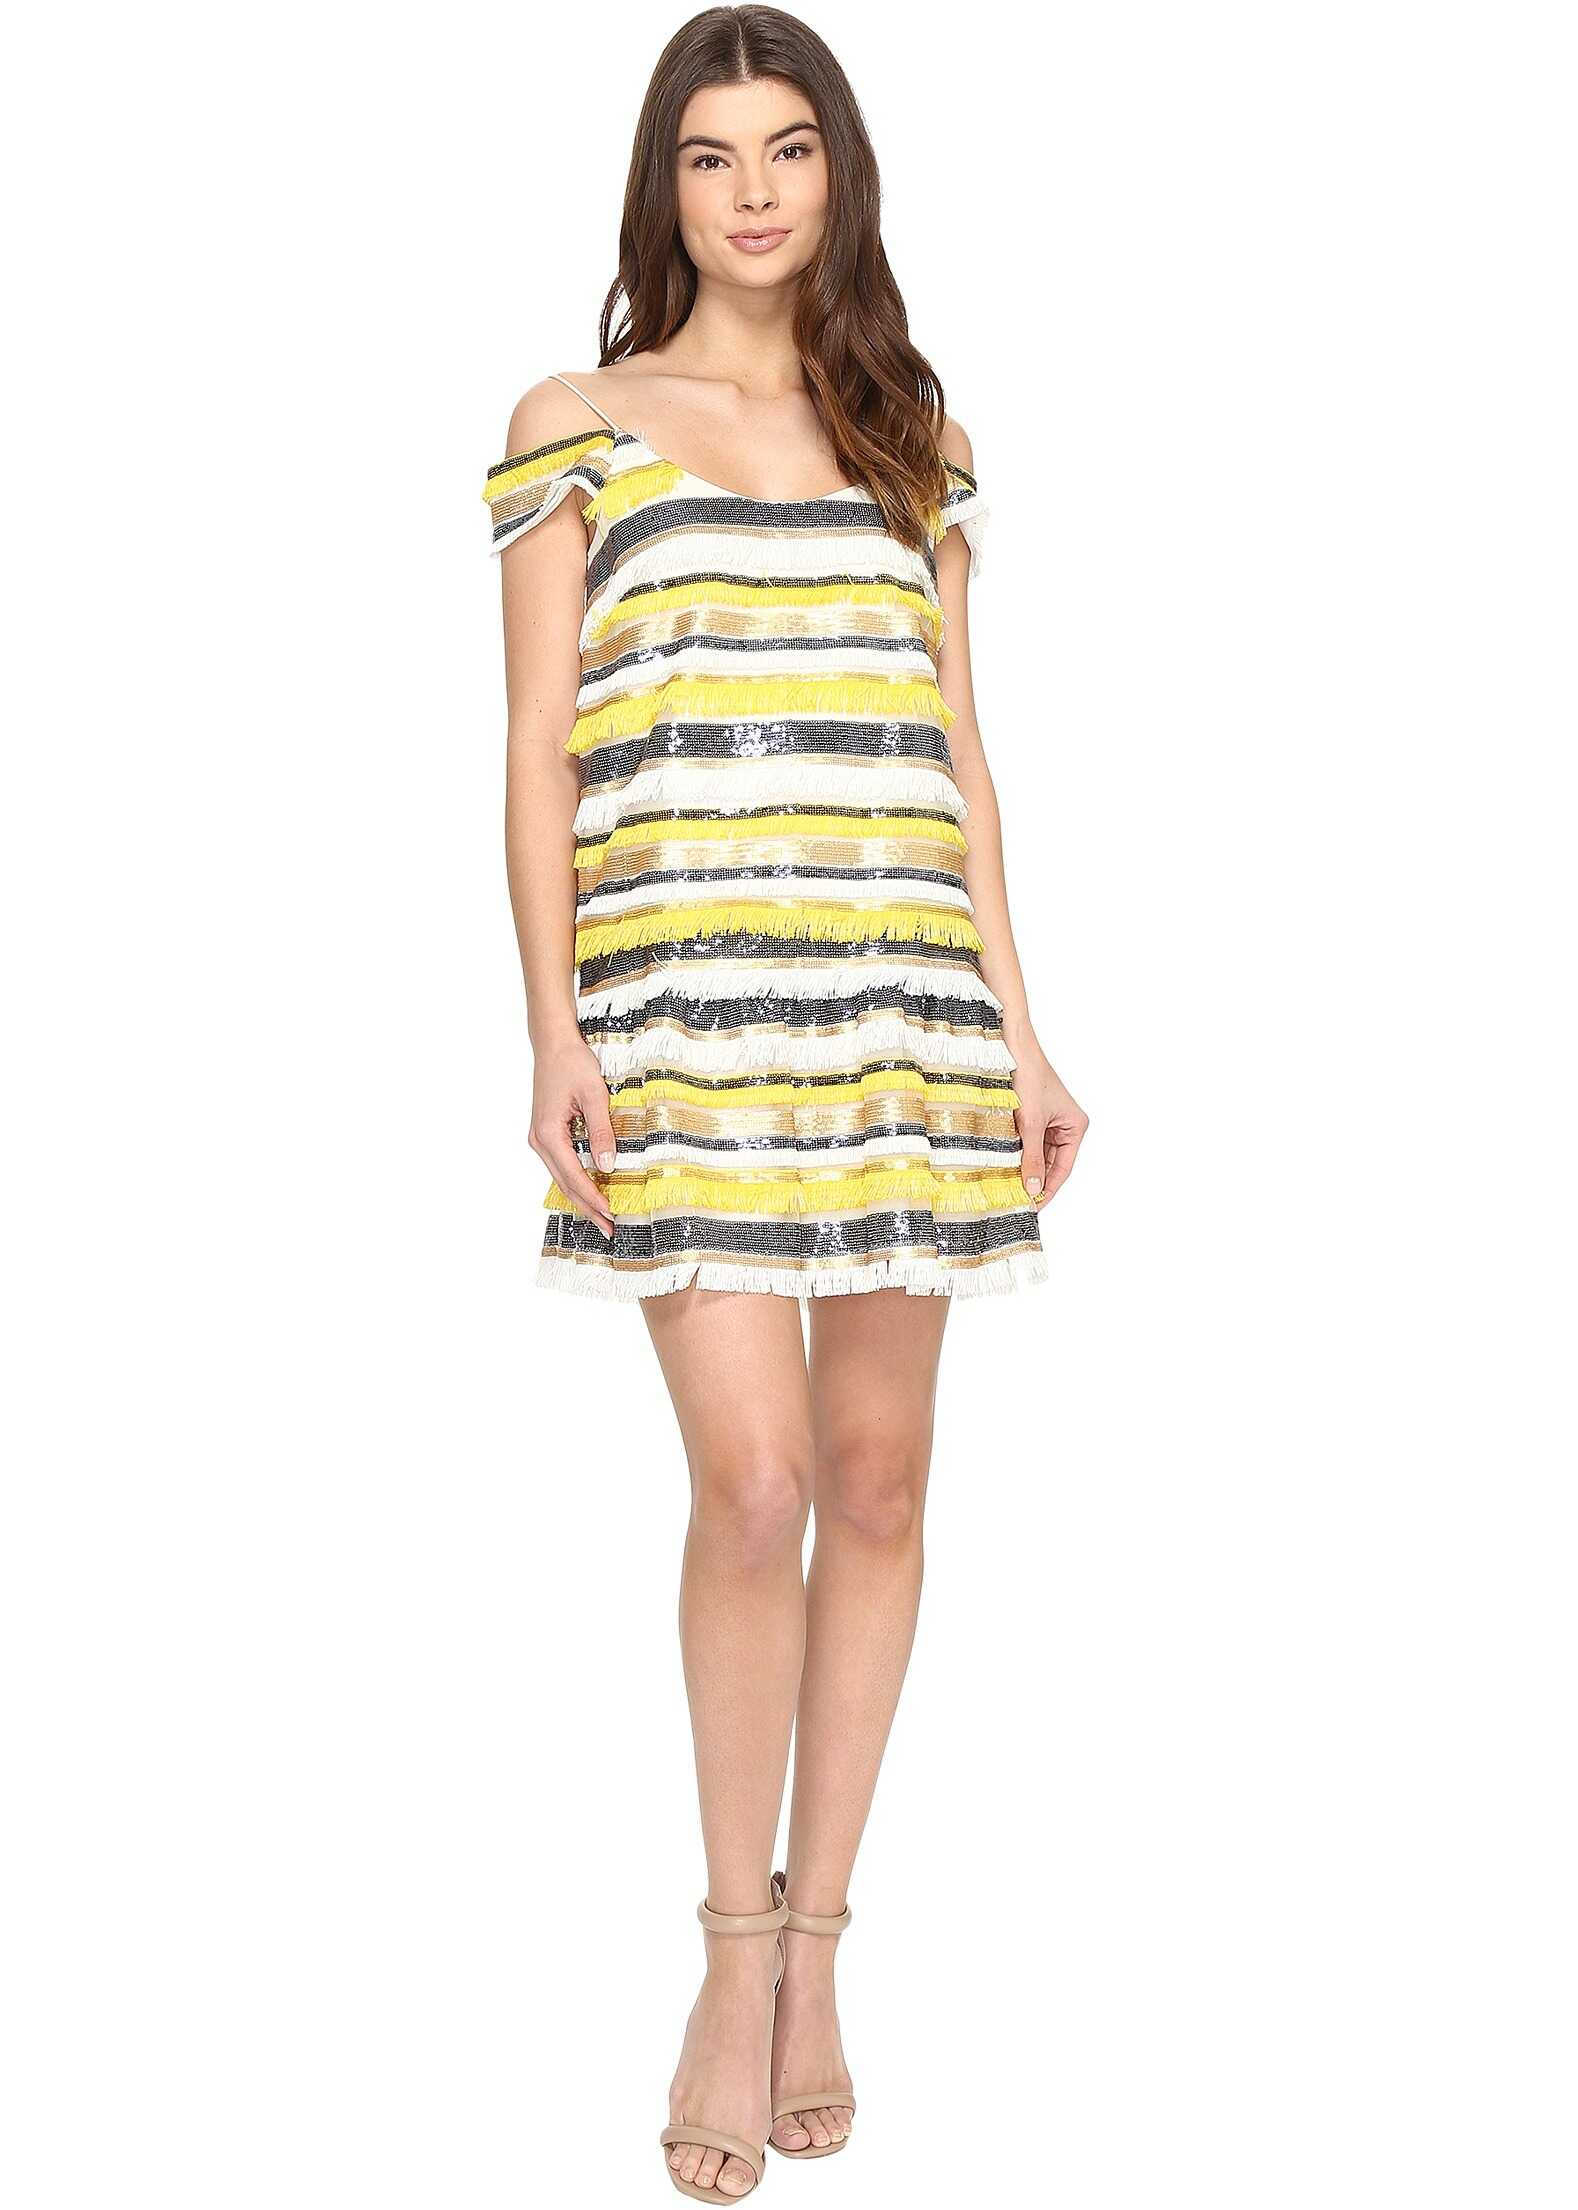 Nicole Miller Trixi Striped Sequin Fringe Party Dress Yellow Multi